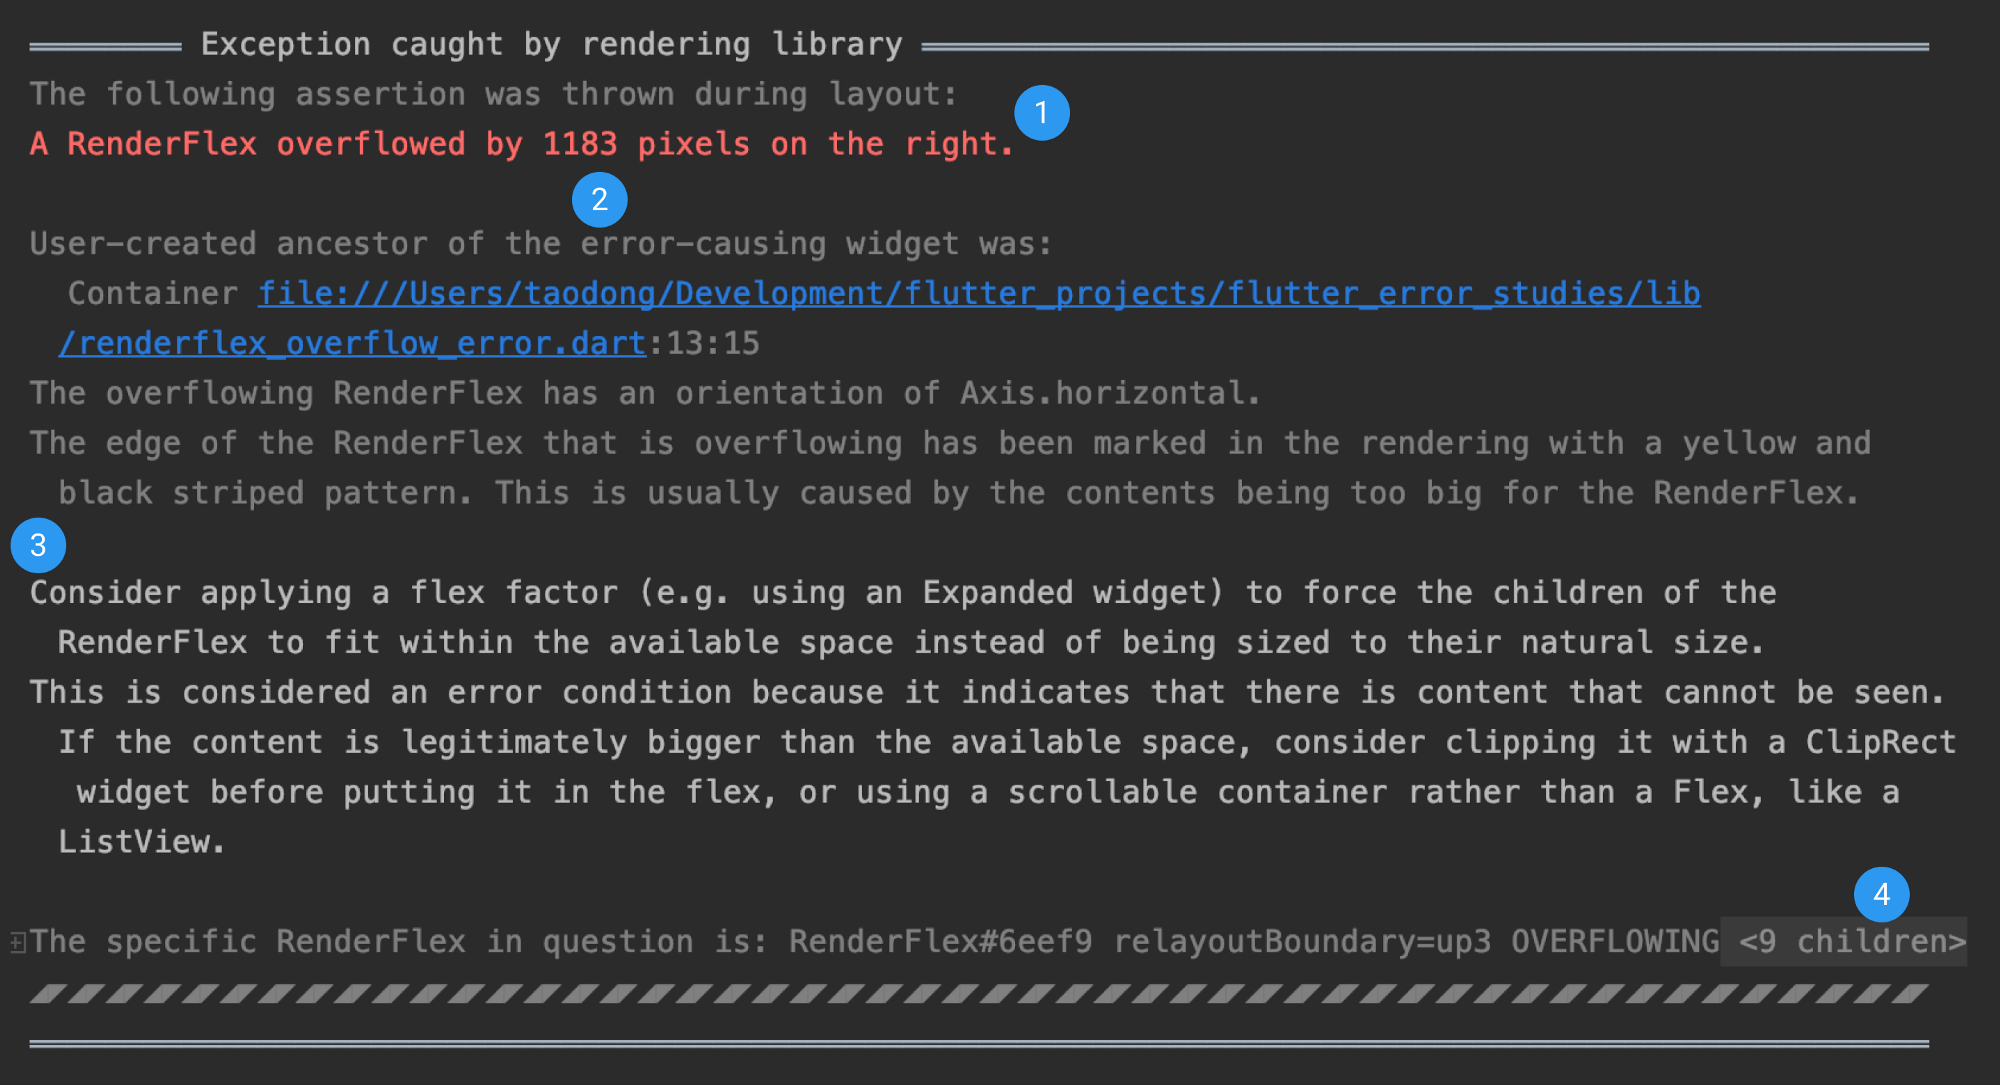 An example of the new structured error message displayed to the user when a RenderFlex overflow error occurs.